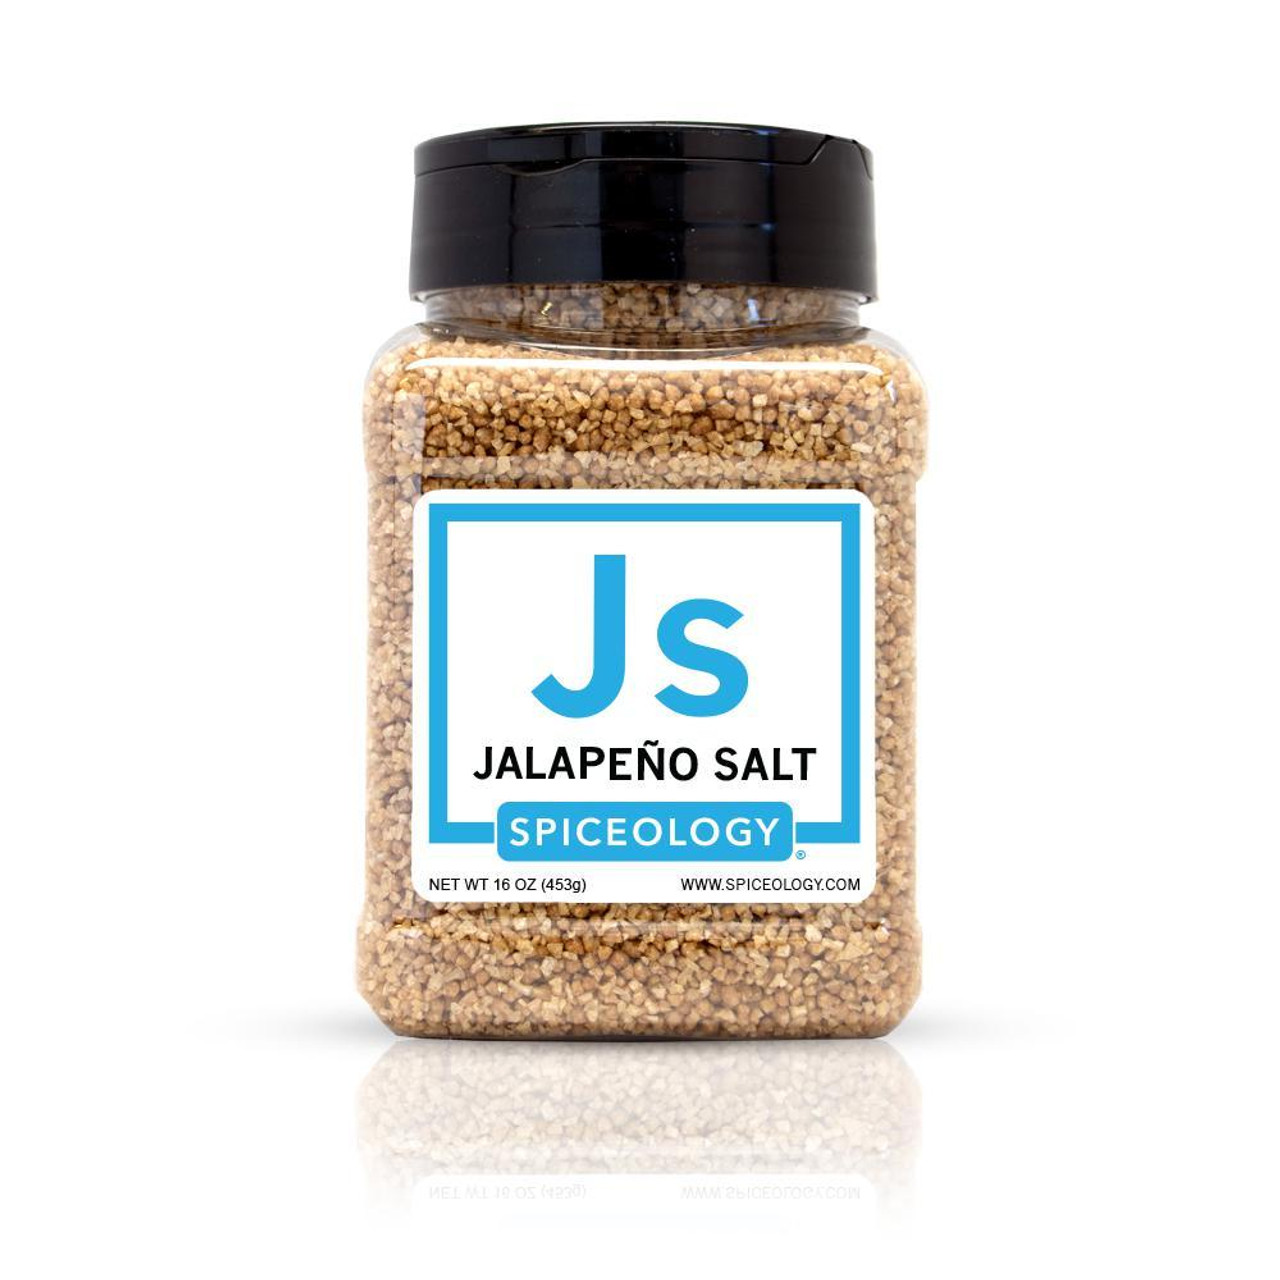 SPICEOLOGY INFUSED SALT - JALAPEÑO SALT